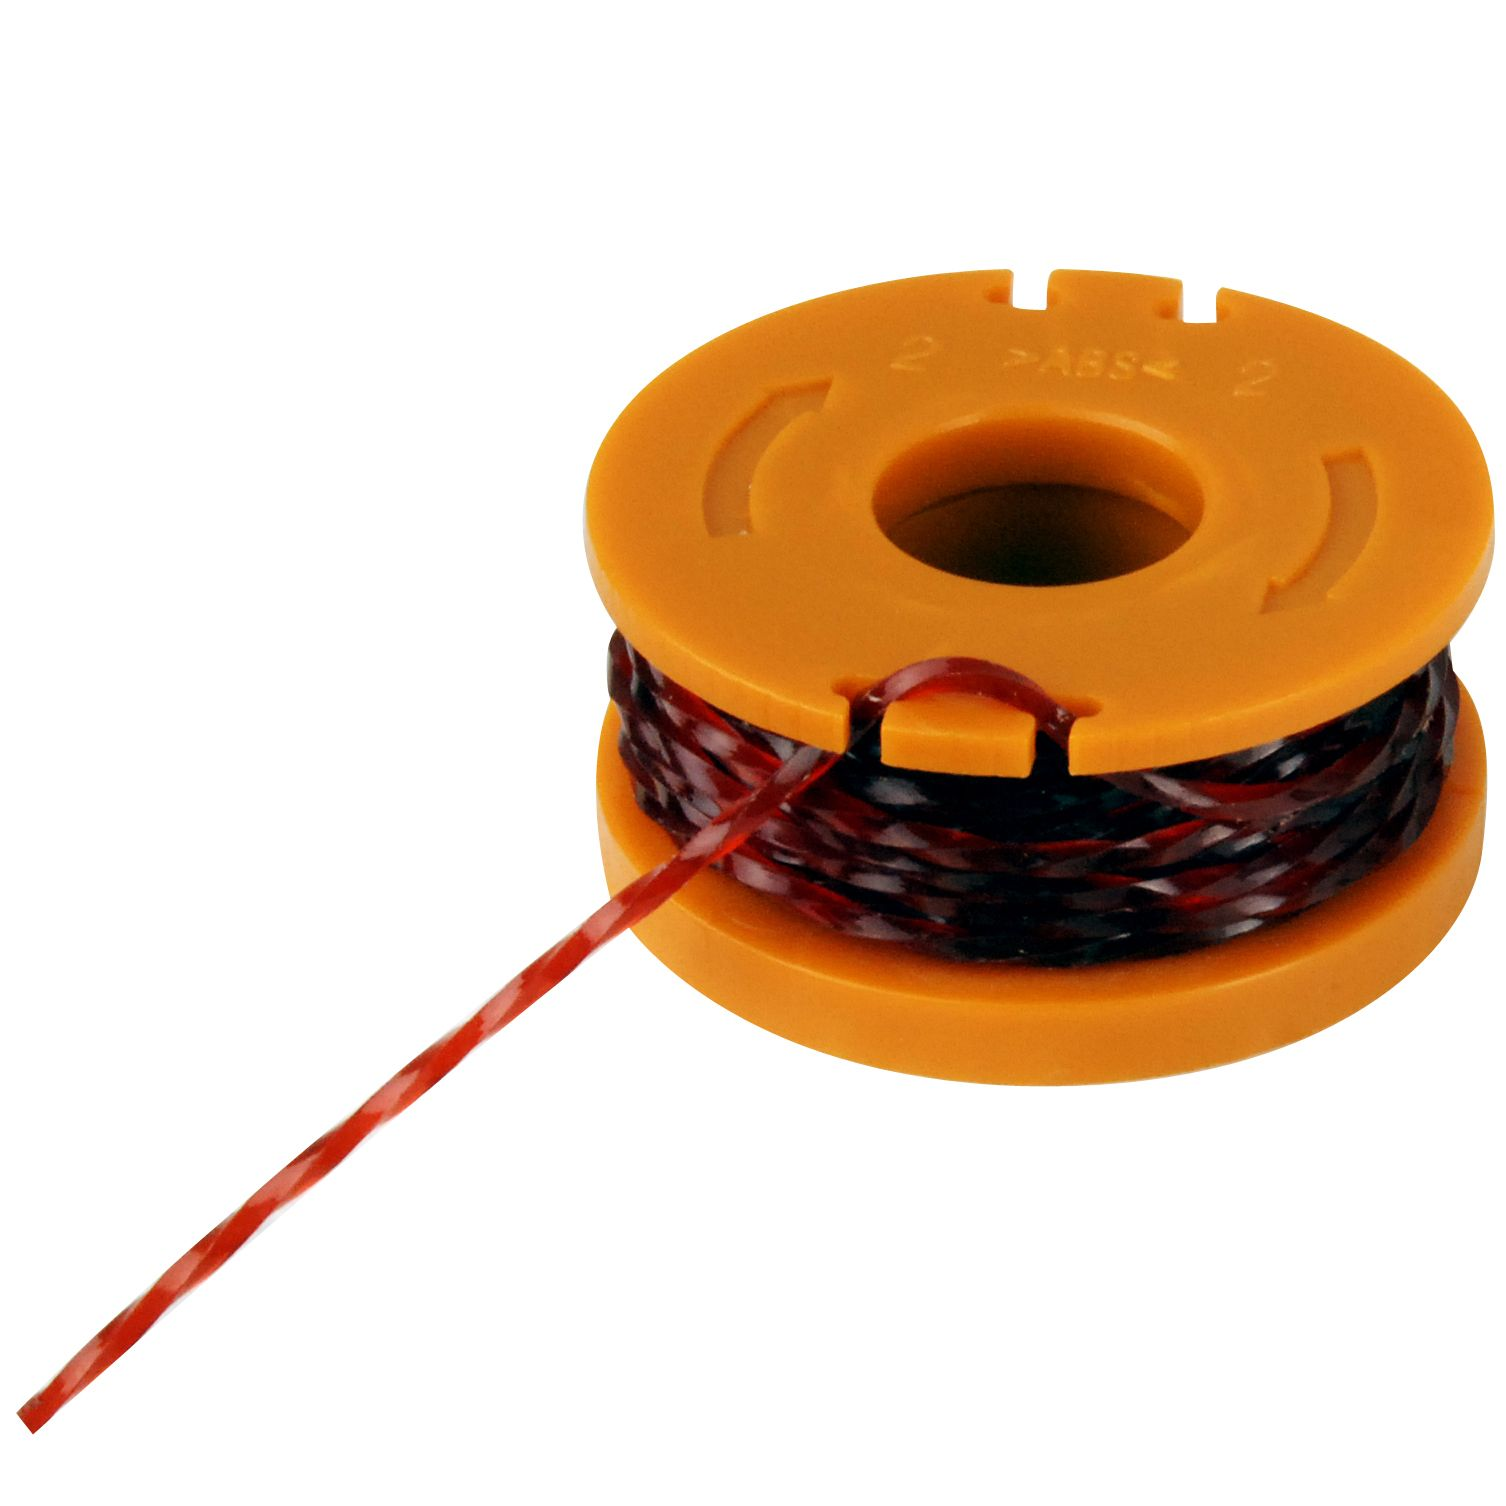 Replacement Spool for String Trimmer #071-74022